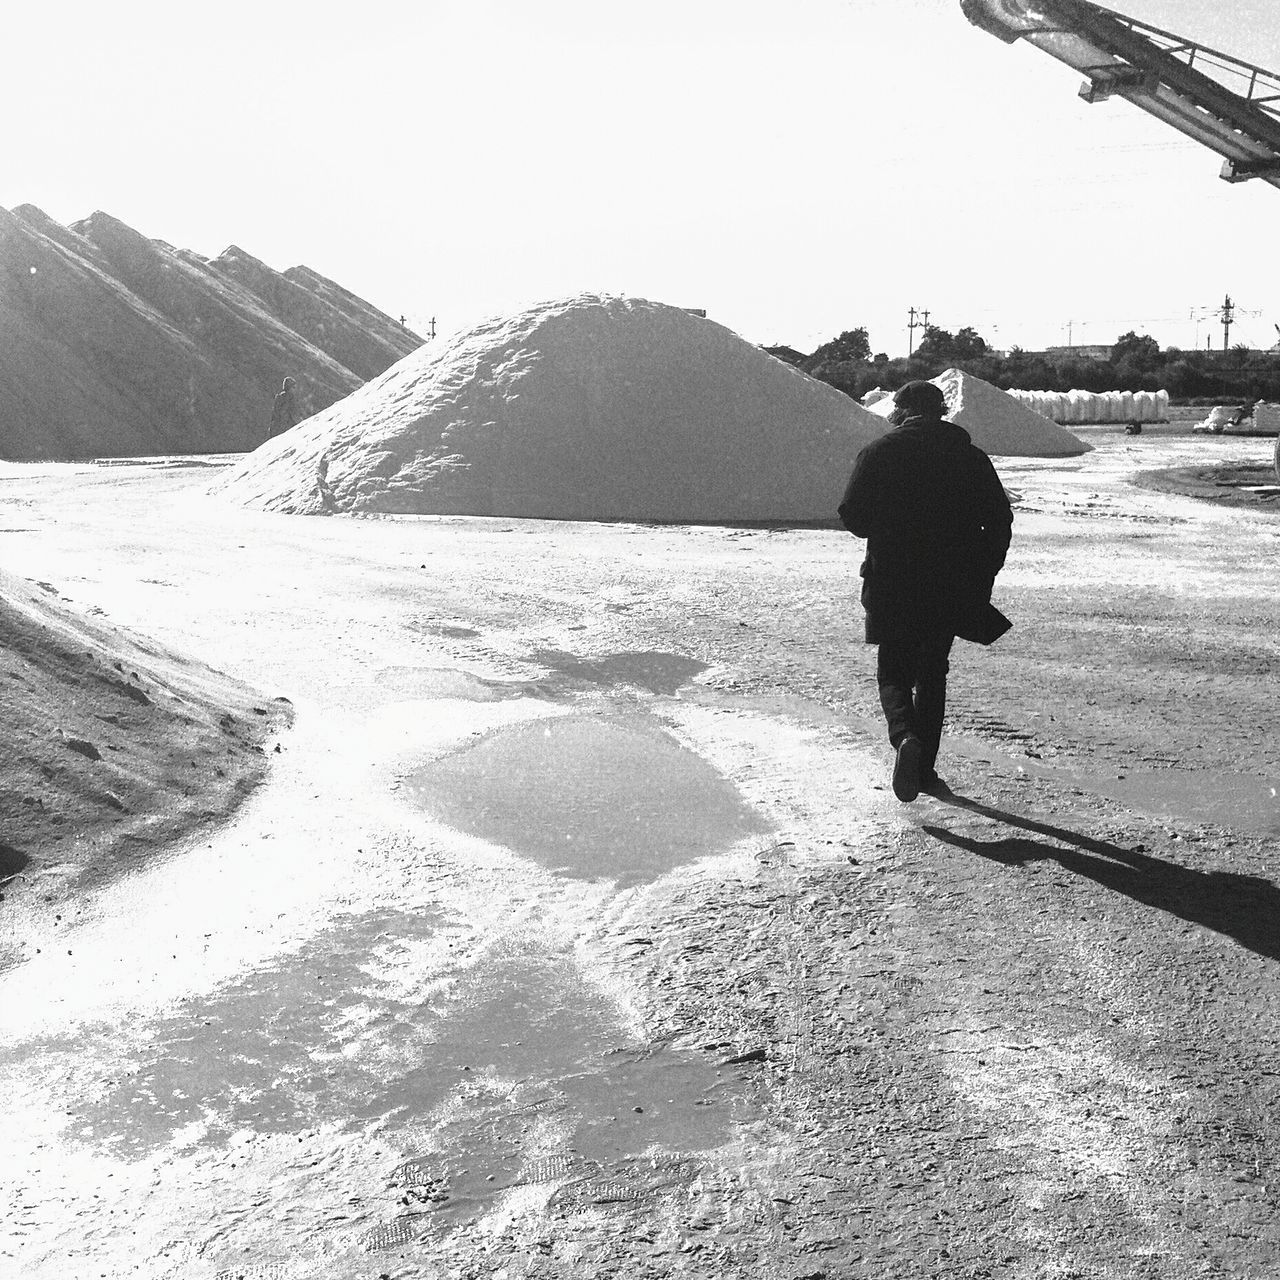 Blackandwhite Salt Salt Works Shadow Real People Walking Alone... Treading Back View Go Away People Outdoors Landscape Shine White Light